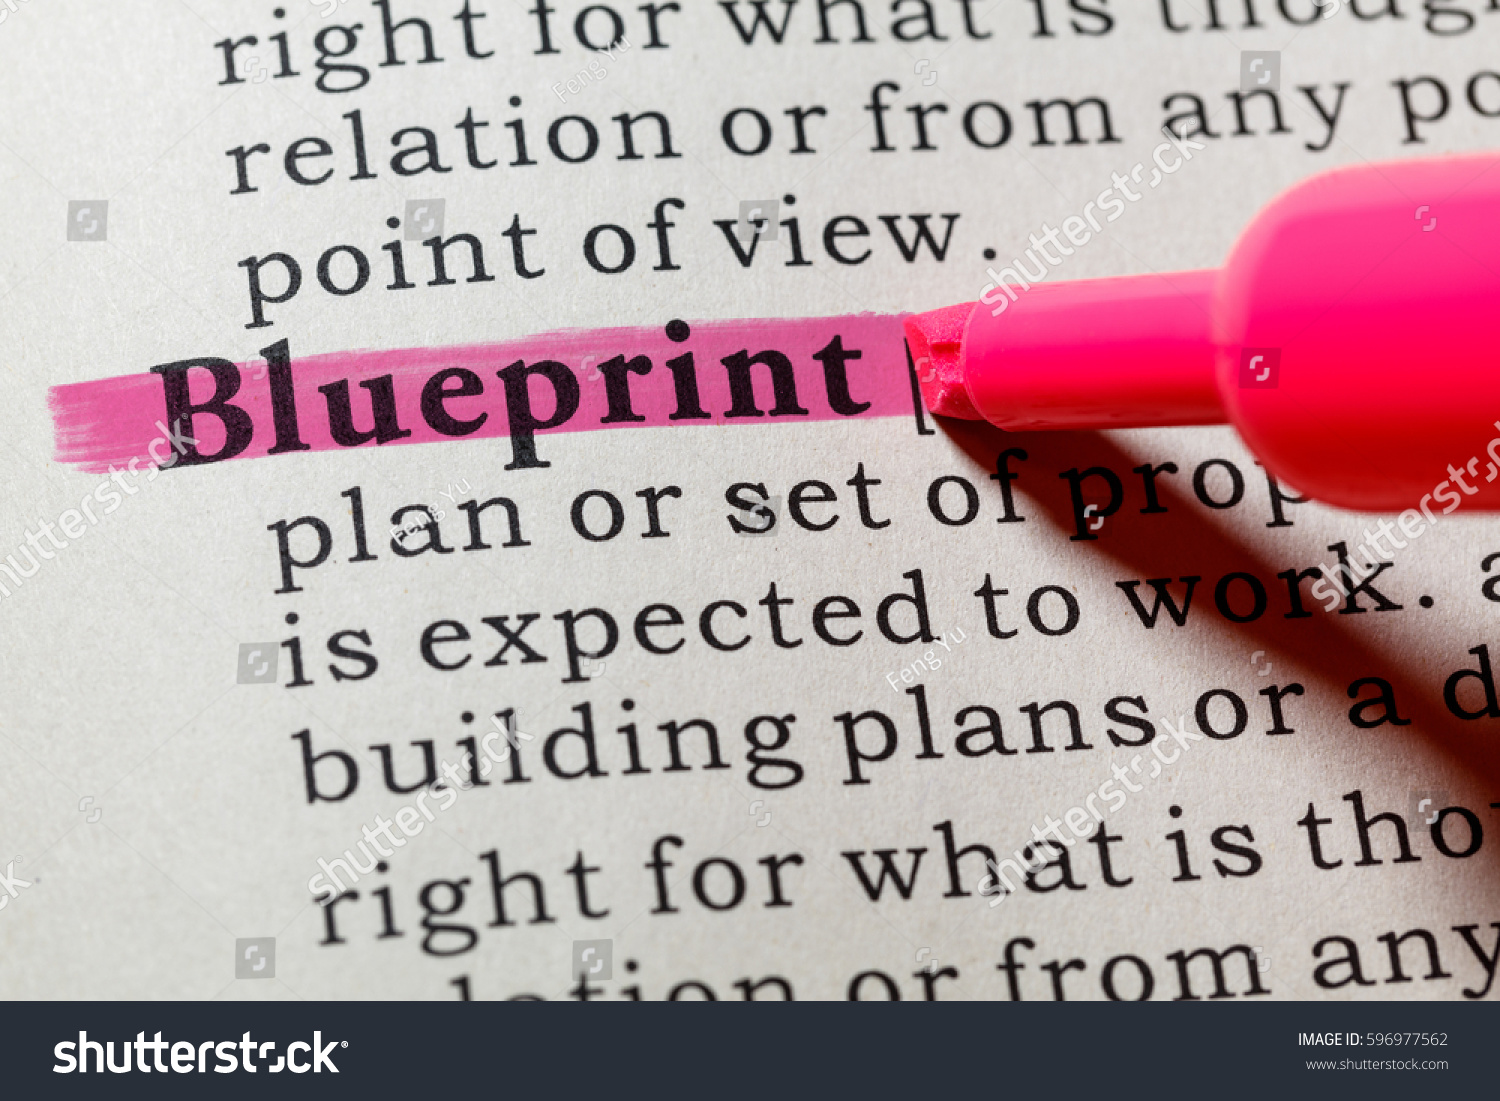 Fake dictionary dictionary definition word blueprint stock photo fake dictionary dictionary definition word blueprint stock photo 596977562 shutterstock malvernweather Image collections